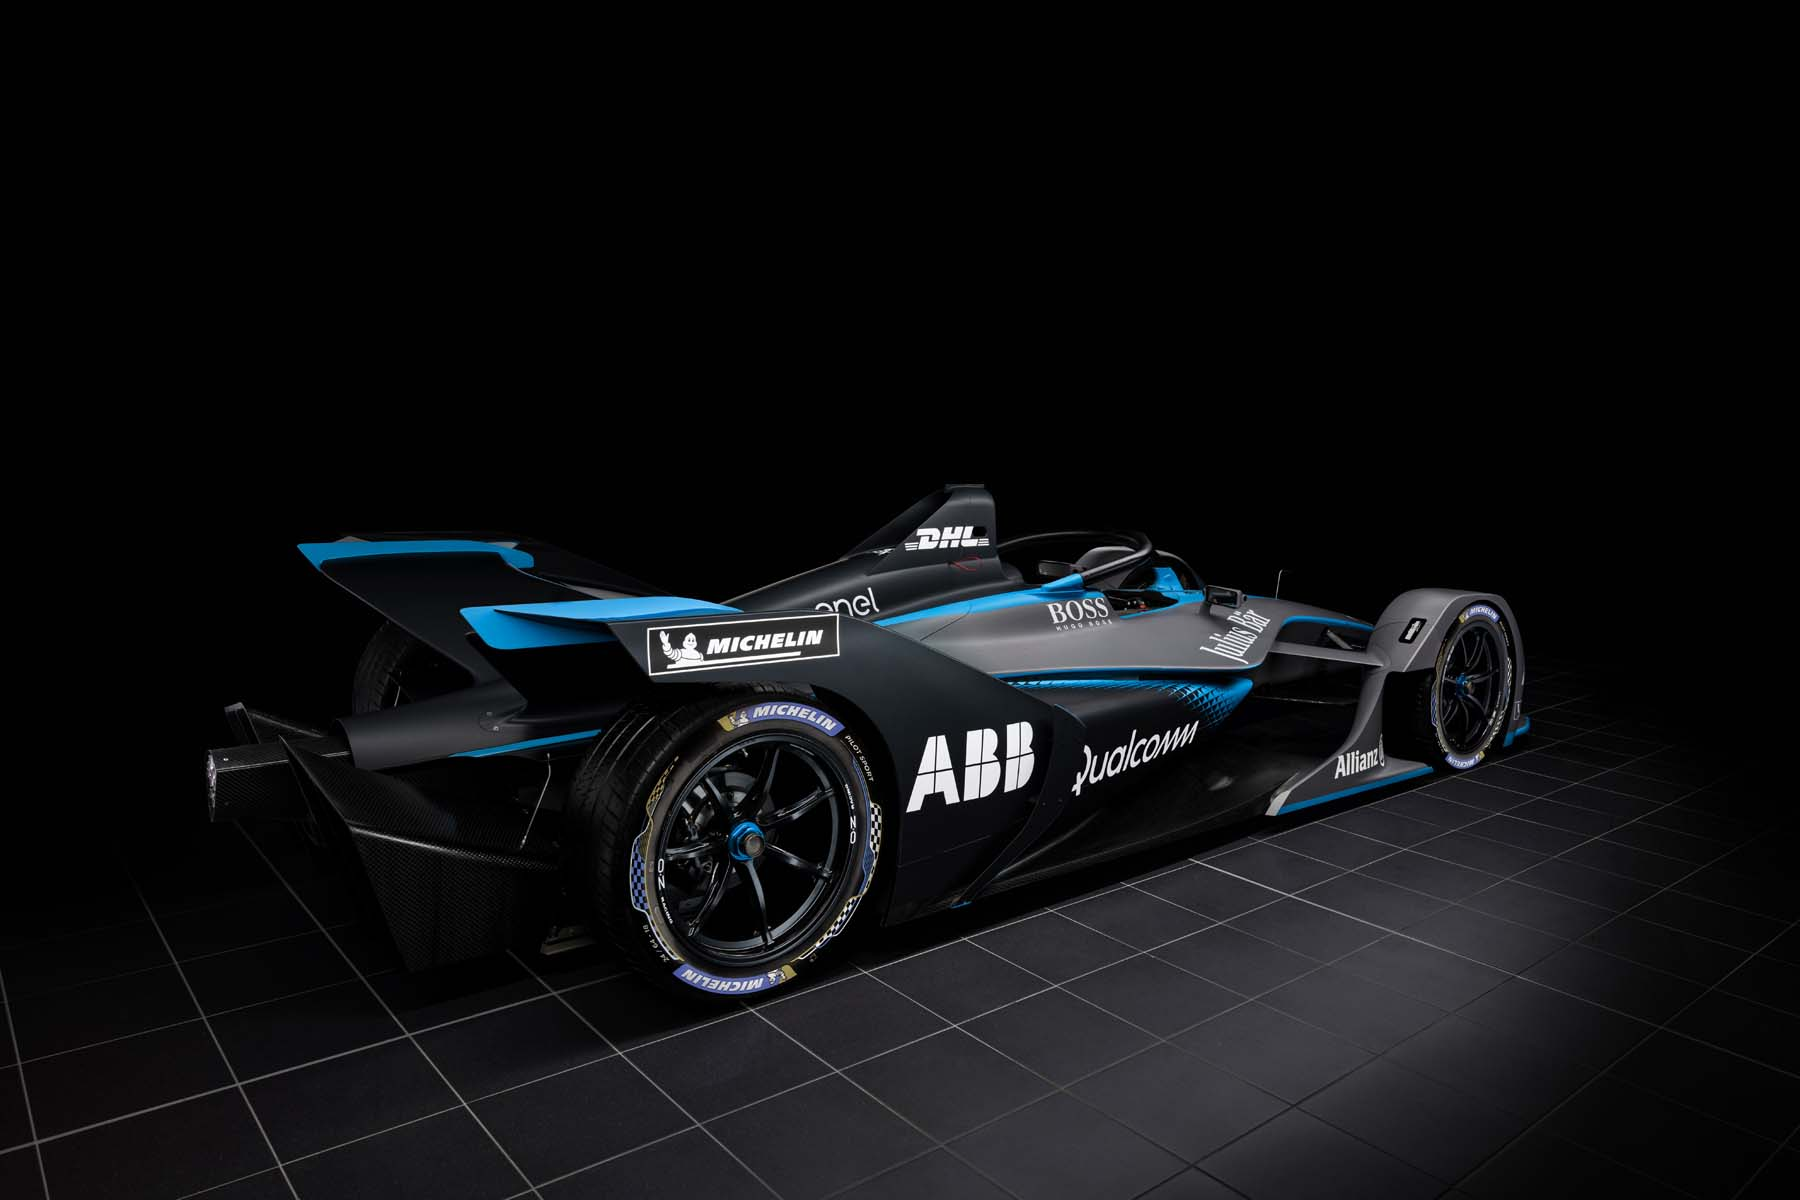 ABB FIA Formula E: Michelin reveals the new MICHELIN Pilot Sport